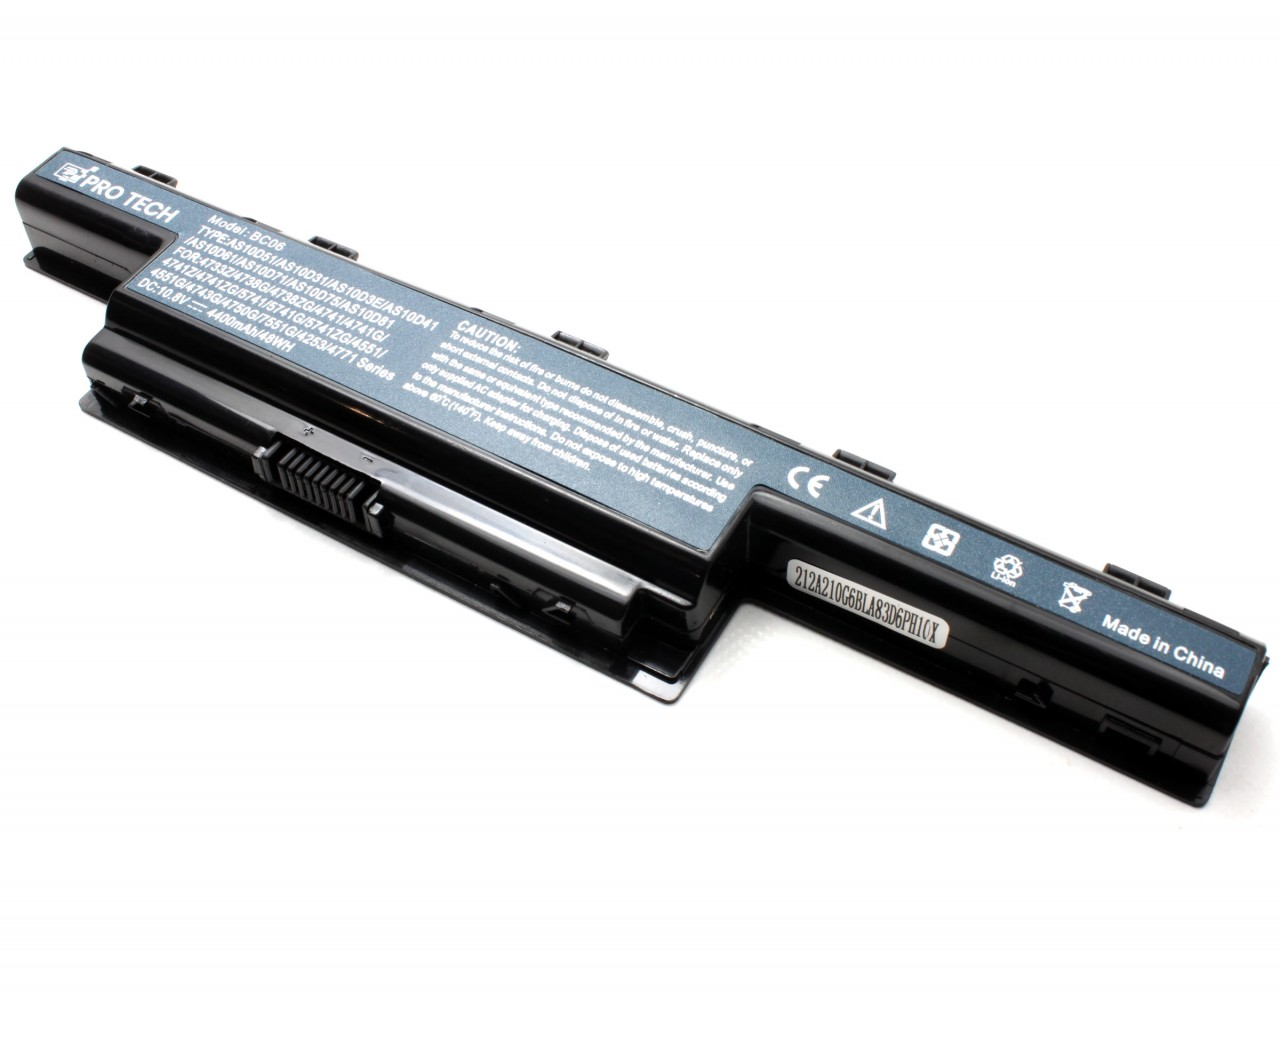 Baterie Packard Bell EasyNote TM80 6 celule imagine powerlaptop.ro 2021